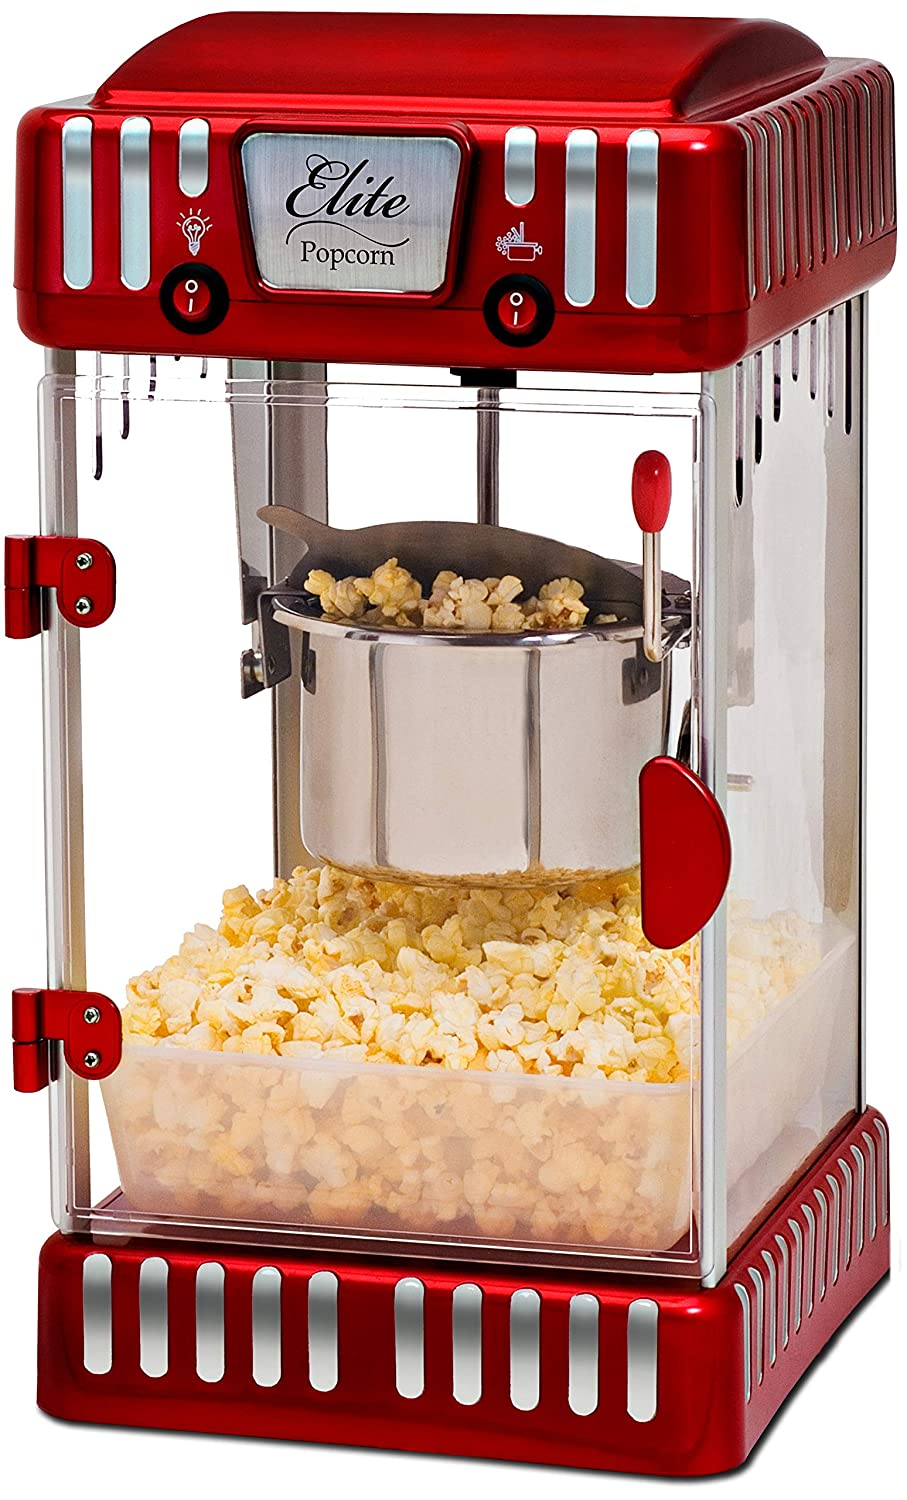 Elite Deluxe EPM-250 2.5 Ounce Classic Tabletop Kettle Popcorn Popper Machine, Retro-Style